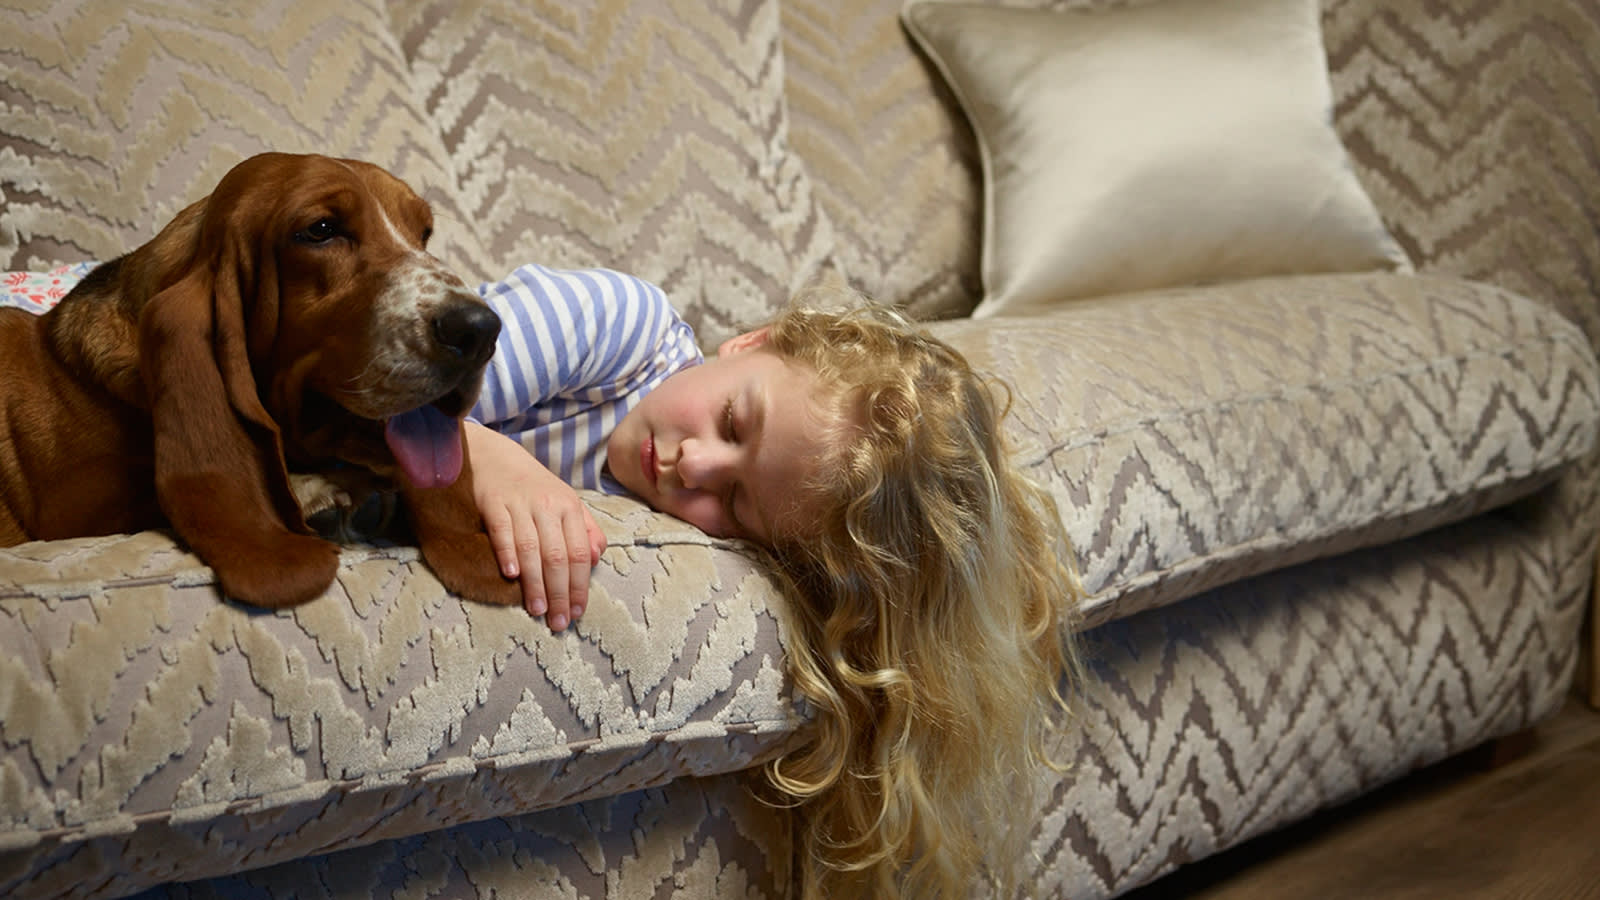 Dog and young girl on fabric sofa